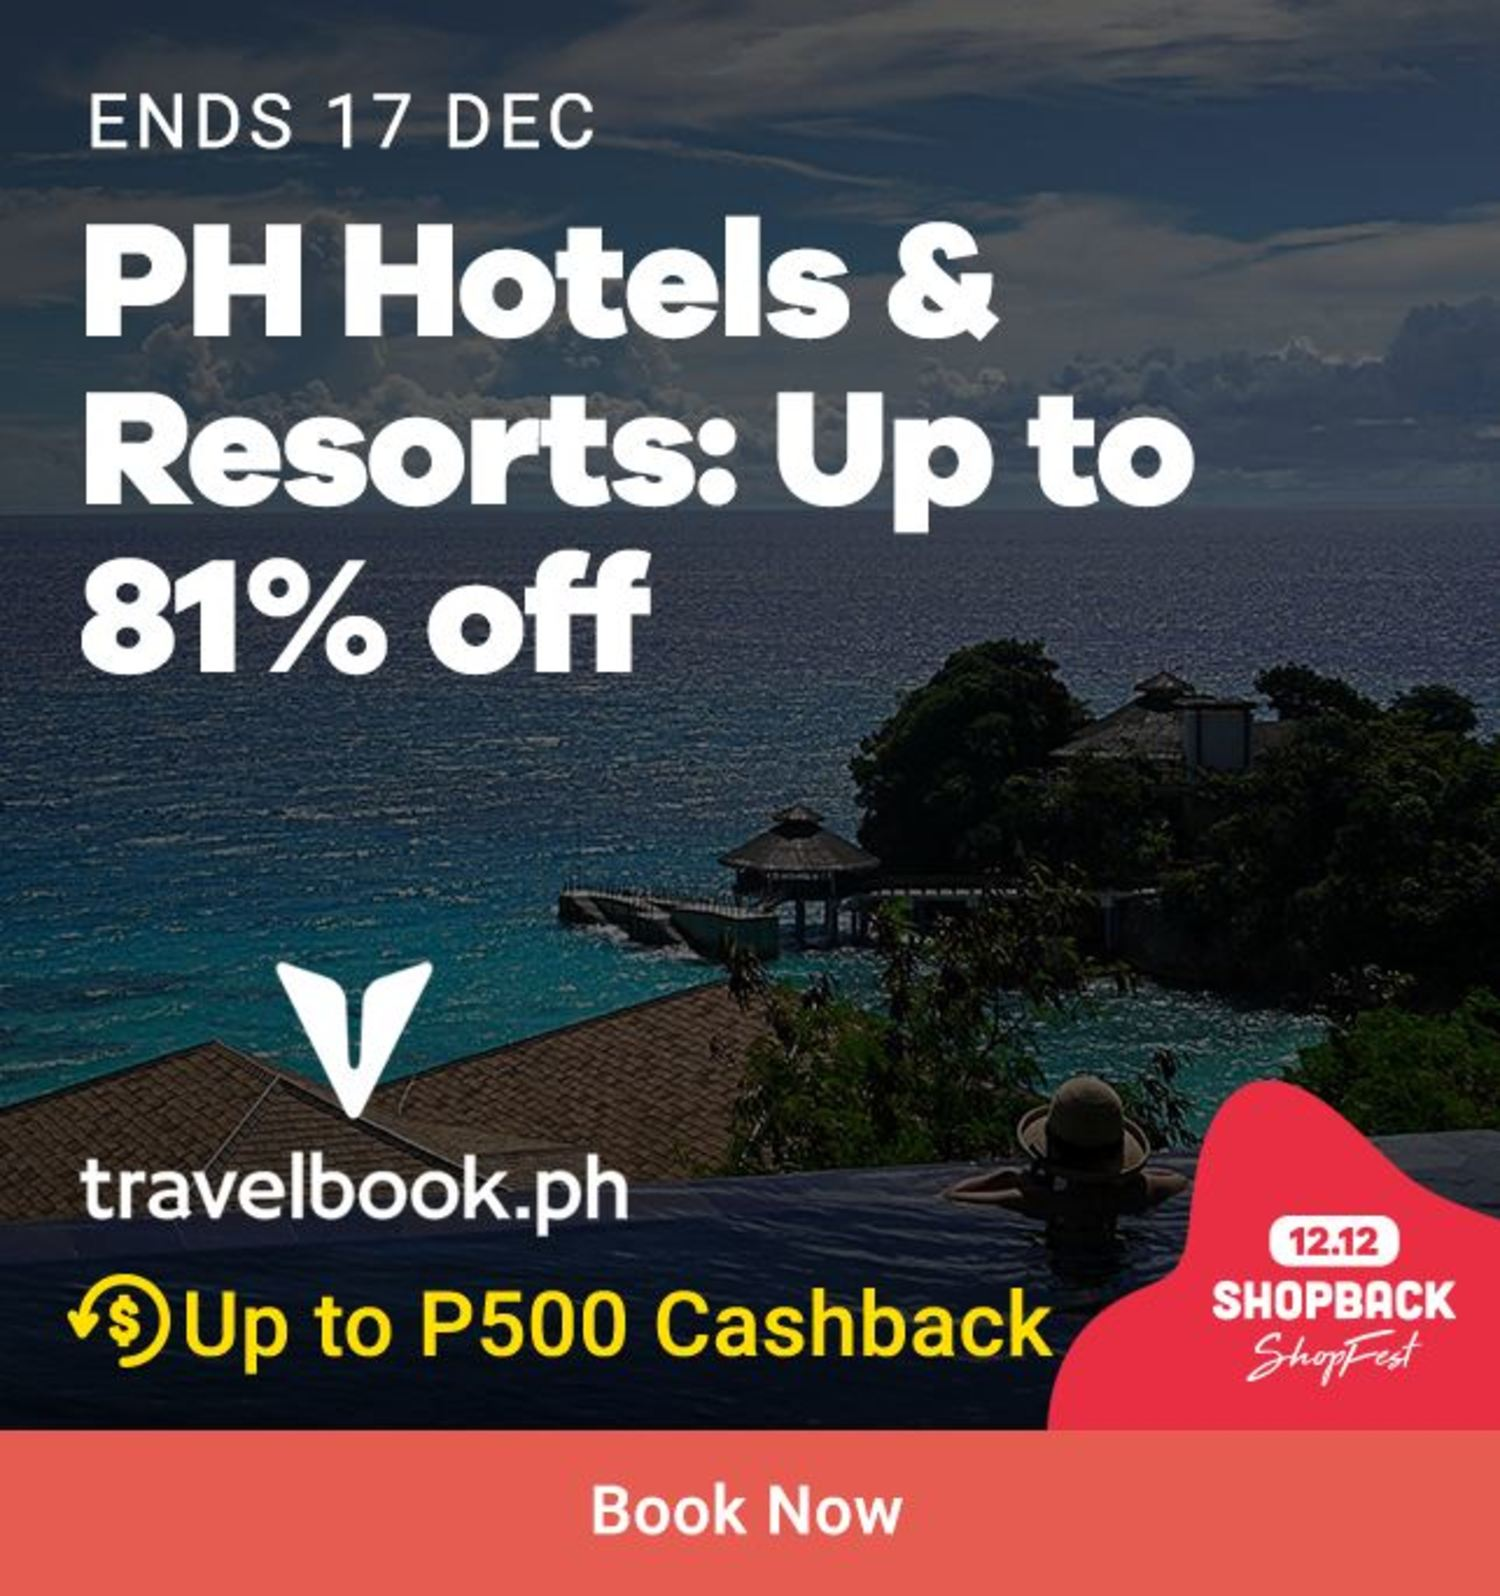 Travelbook: PH Hotels & Resorts Up to 81% off